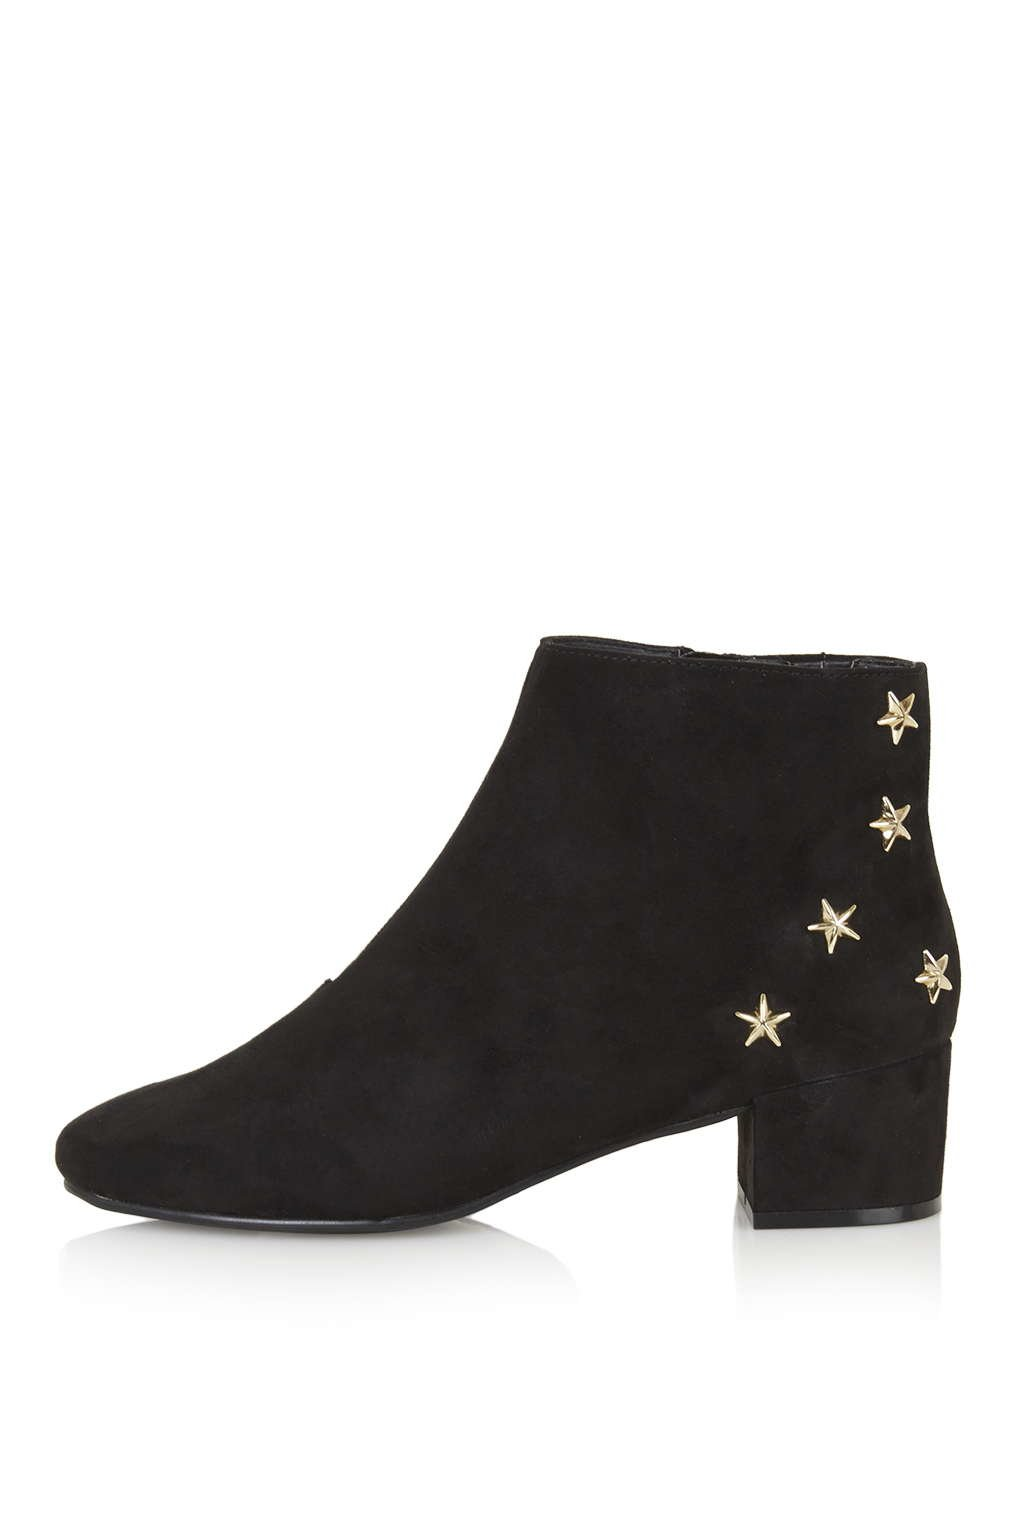 TOPSHOP Betty Star Boots in Black